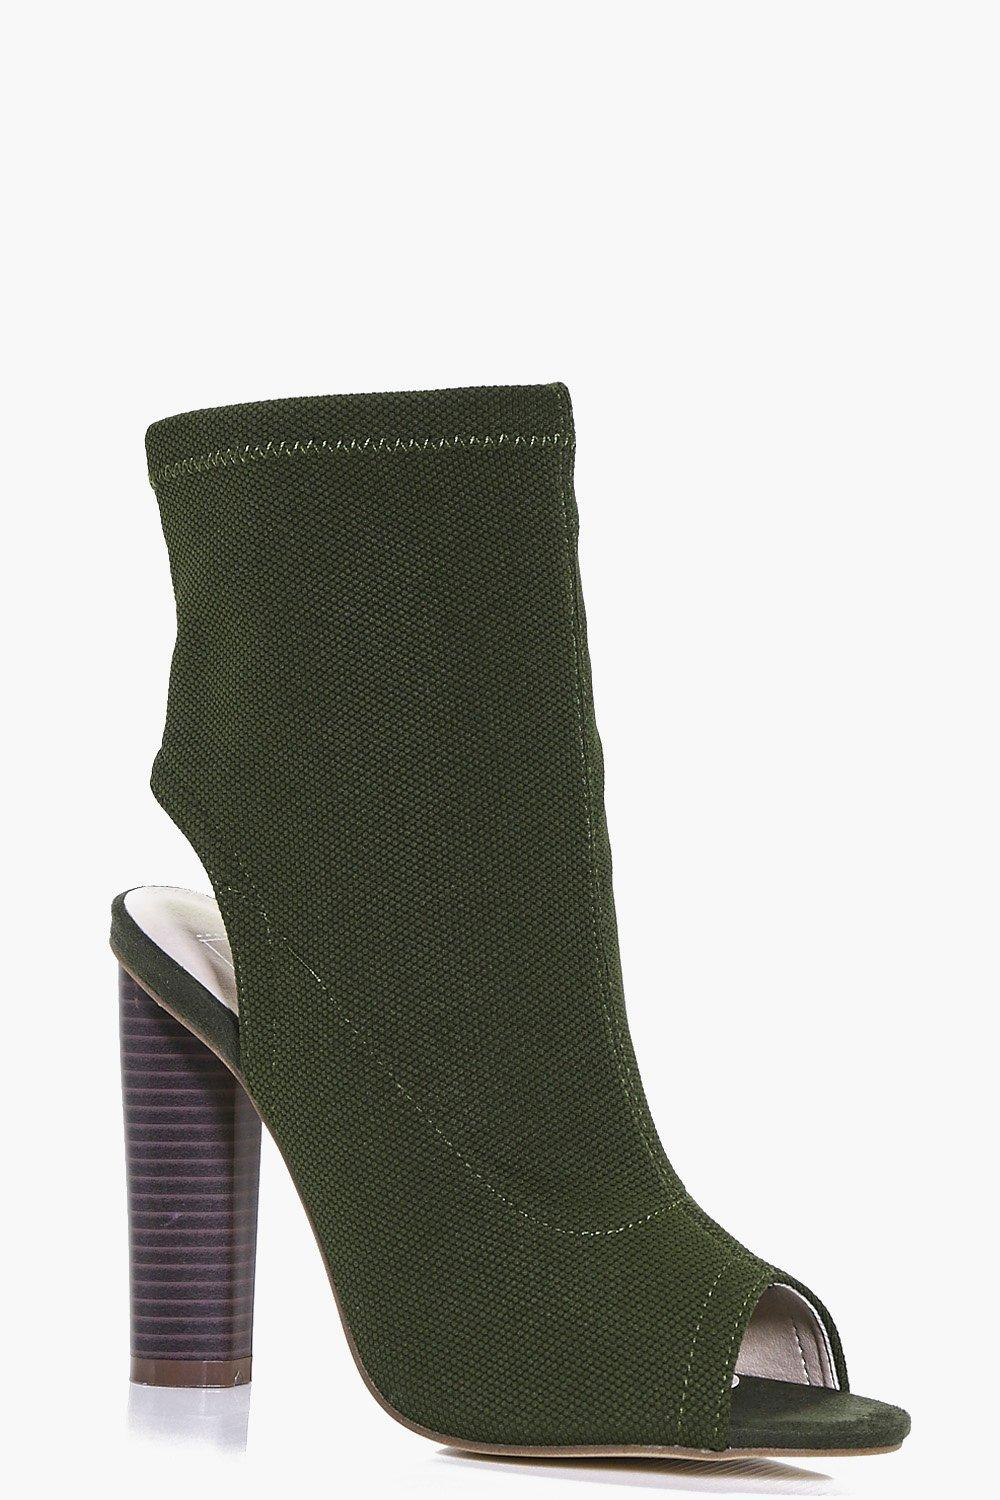 Ellie Peeptoe Open Back Shoe Boot